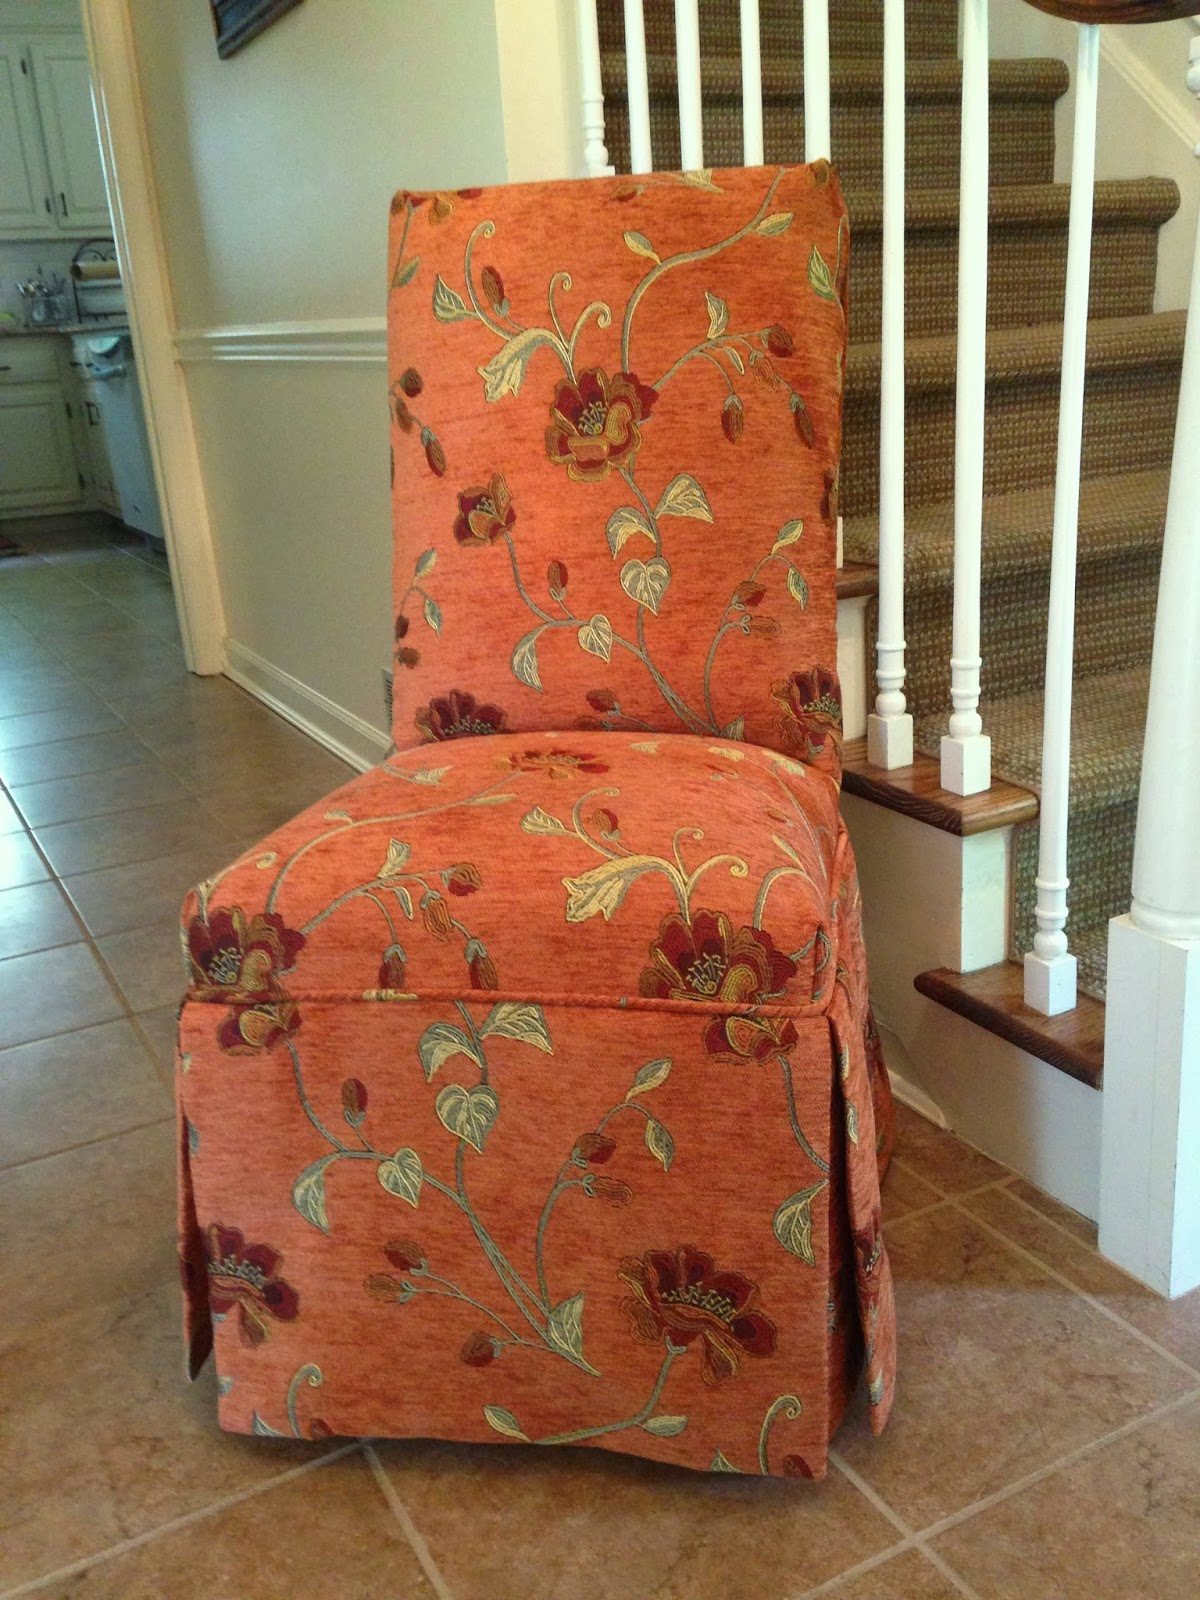 Habitat Dining Room Chair Covers Gold Sequin For Sale Parsons Chairs From The Restore Become Host